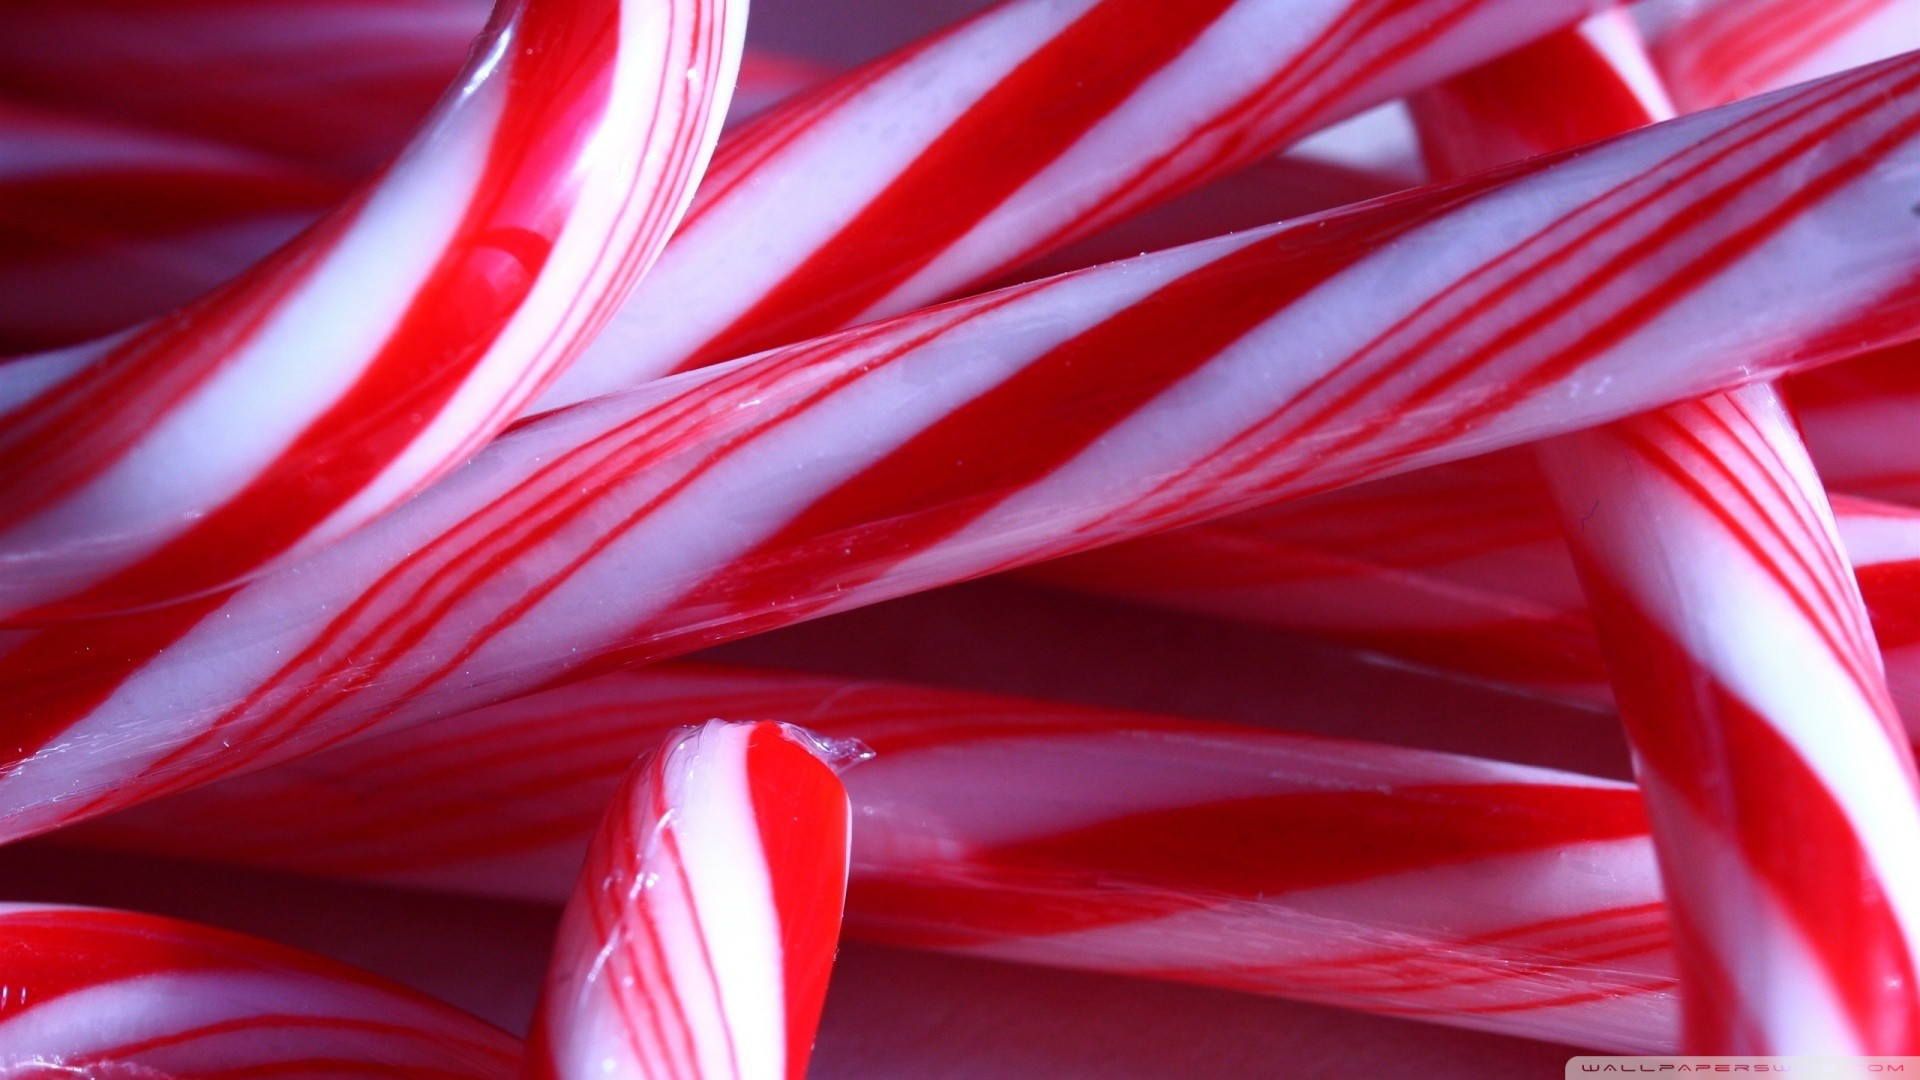 Candy Cane Backgrounds (39+ images)